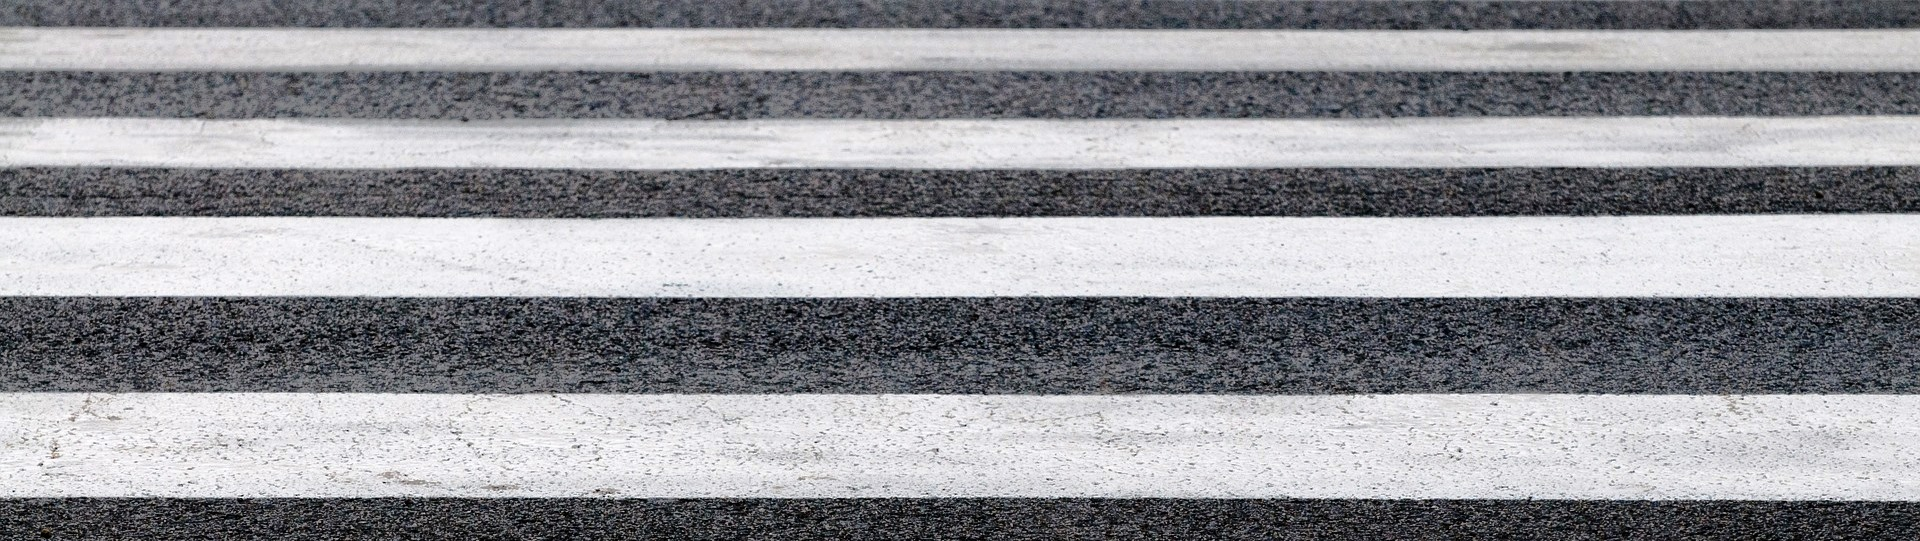 What Inspired Zebra Crossing Soul Song?